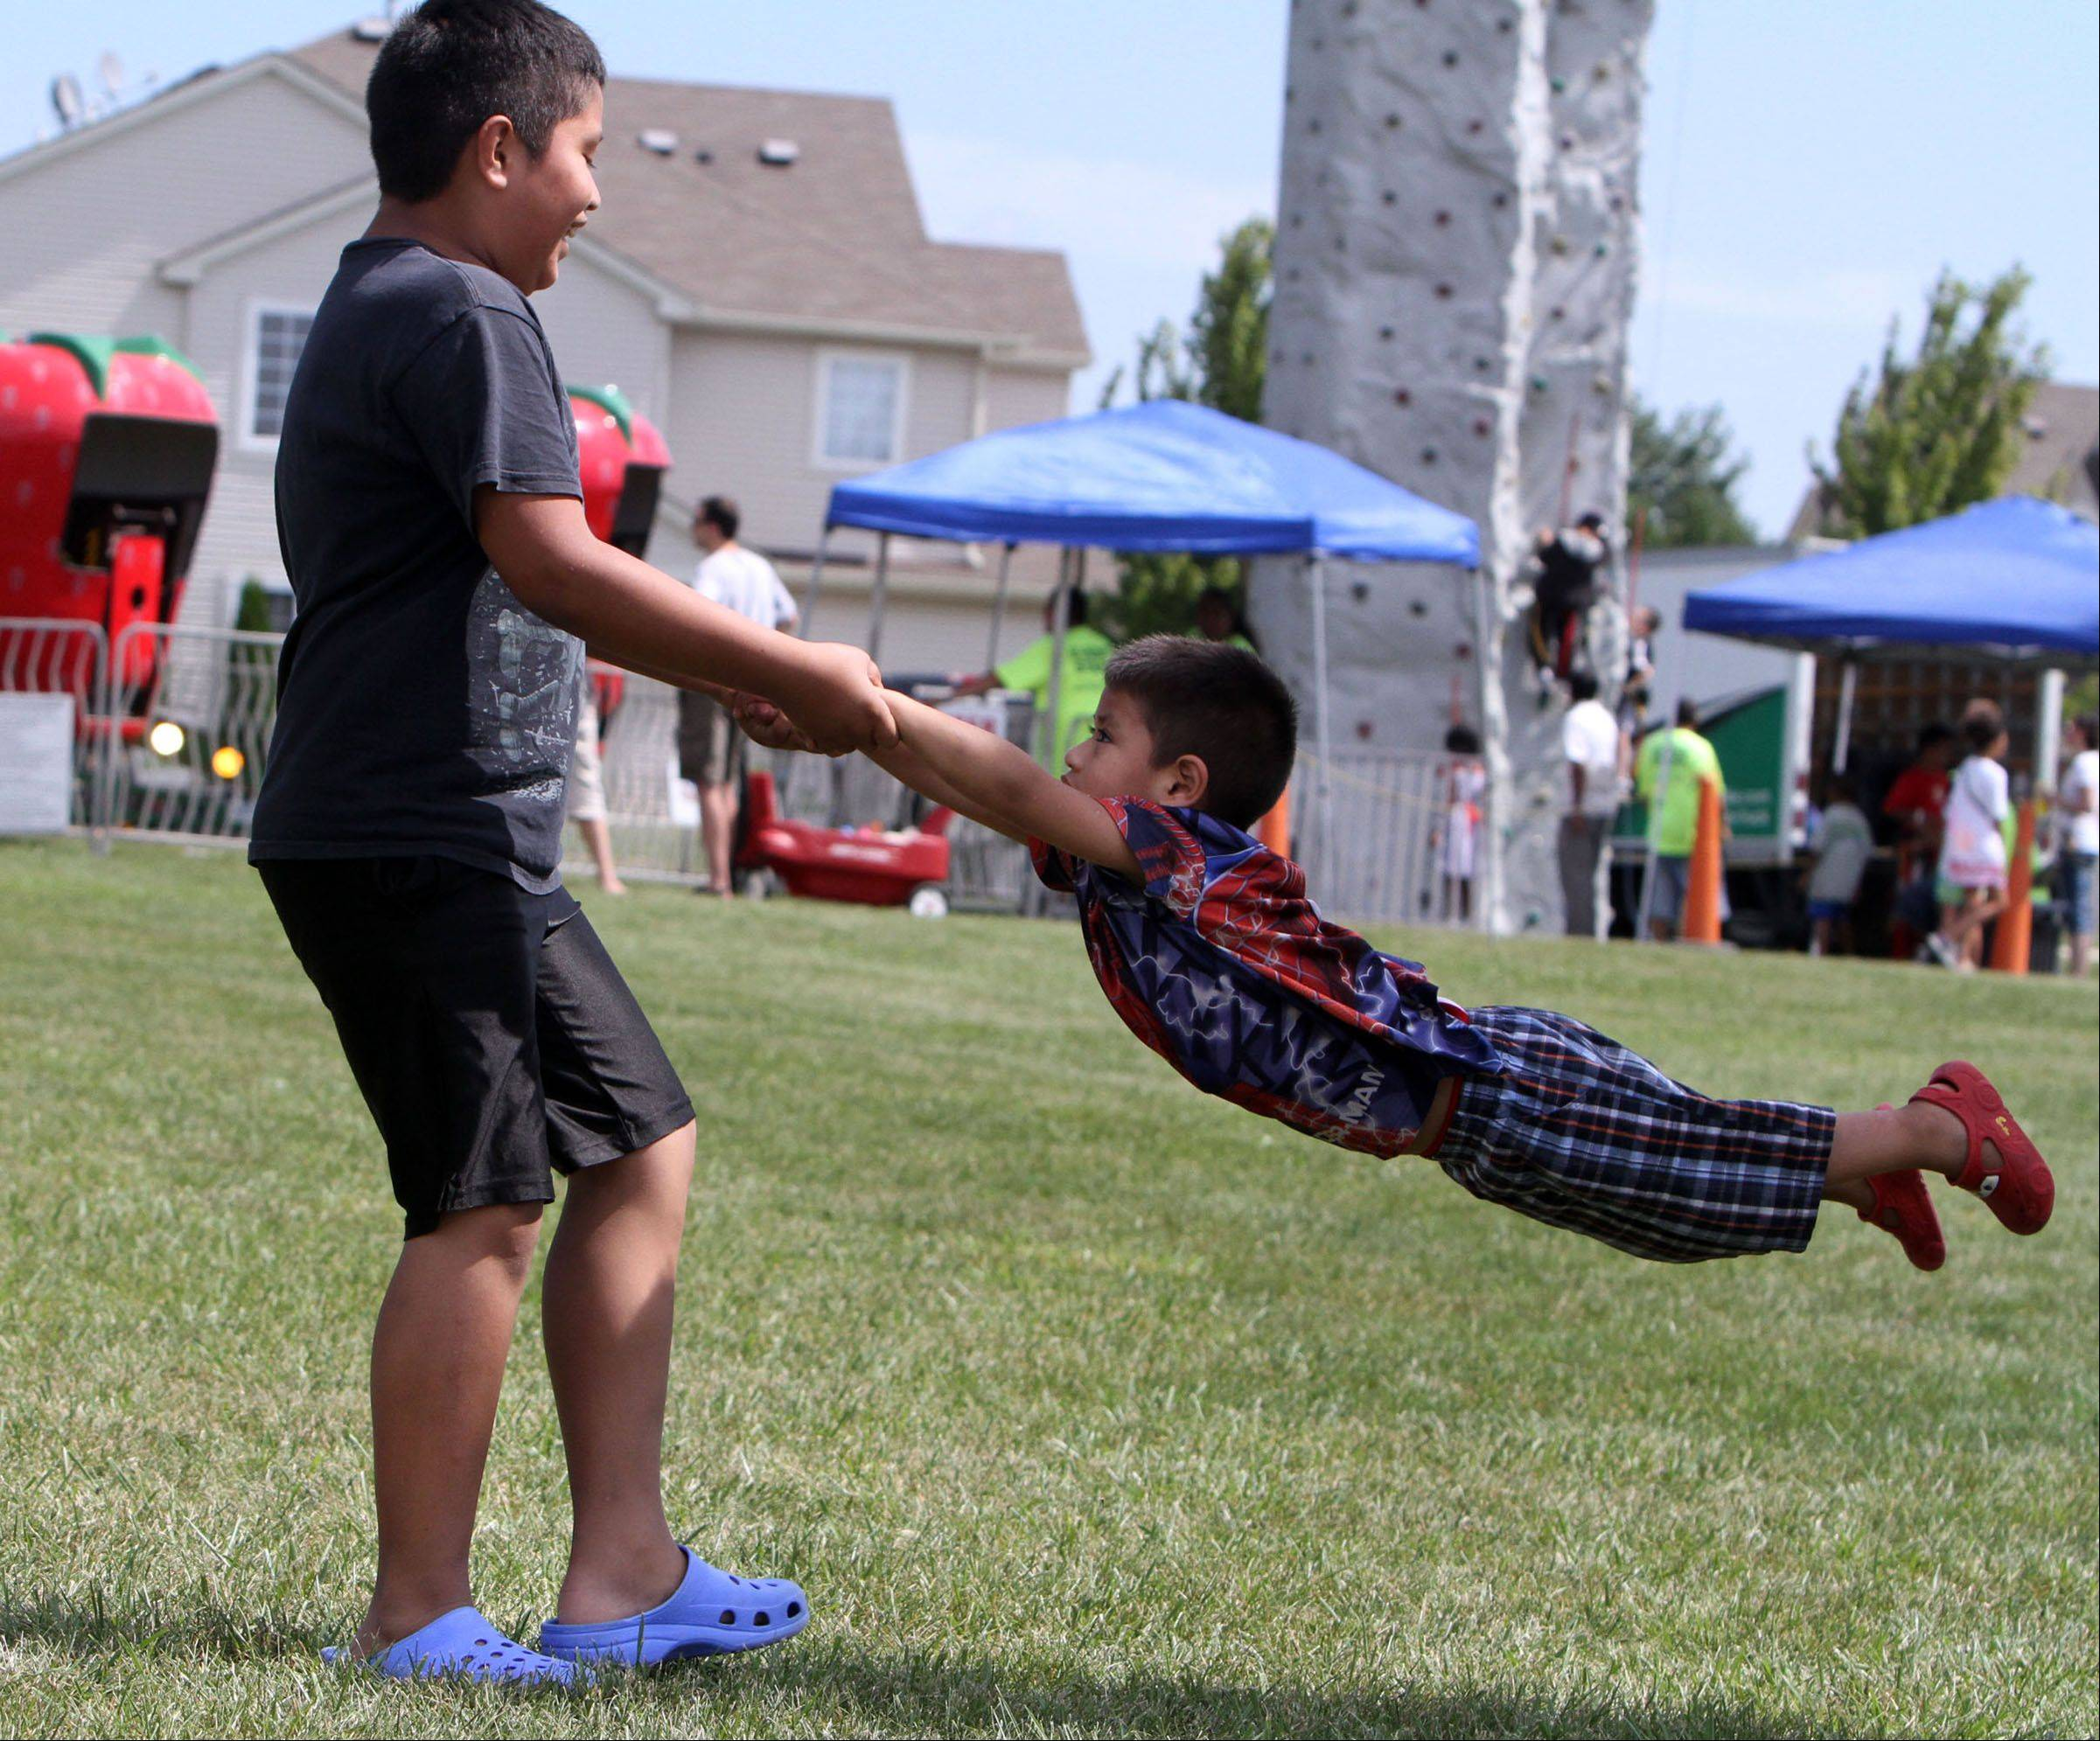 Jesse Vargas, 9, swings his brother Keven, 3, both of Round Lake Beach enjoy a picnic at Hainesville Fest at Union Square Park on Saturday.